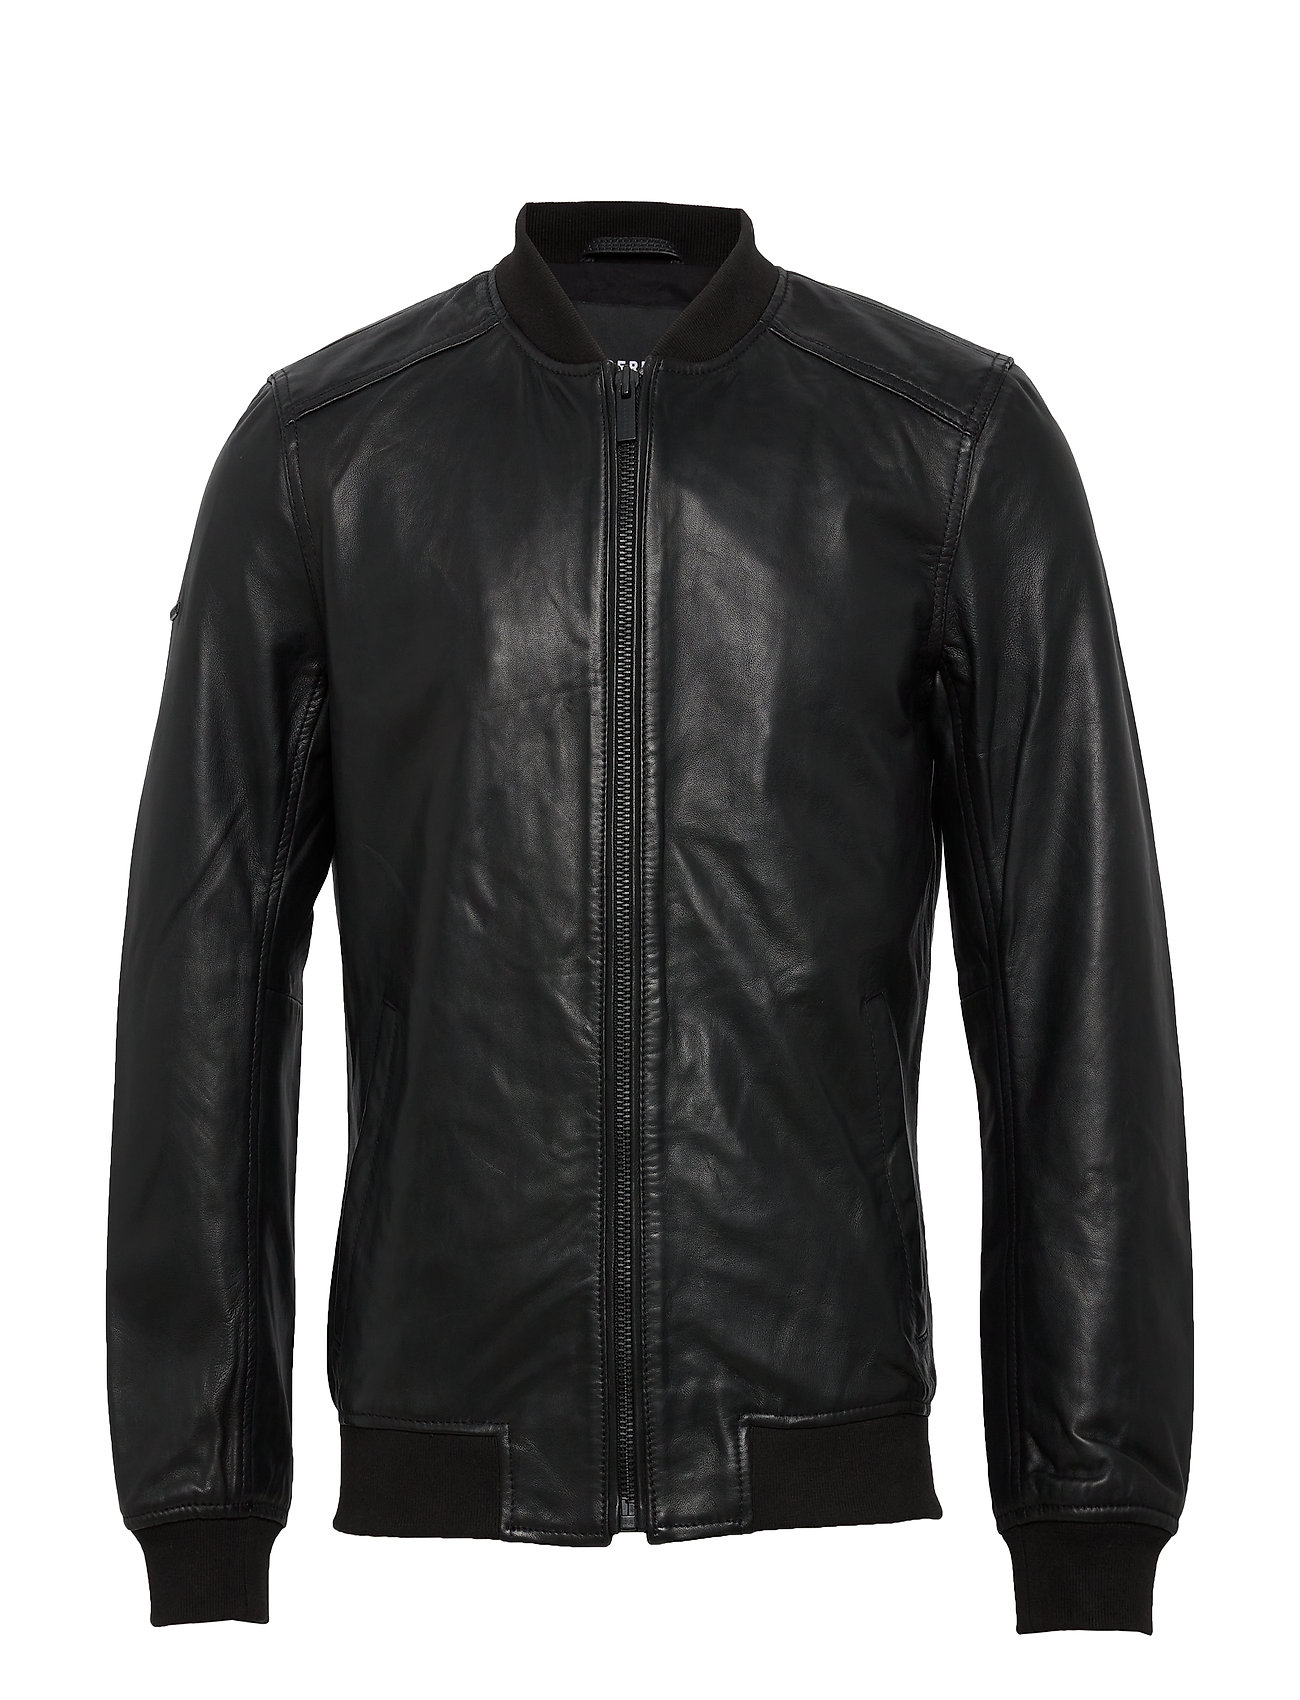 Image of Light Leather Bomber Læderjakke Skindjakke Sort Superdry (3367557133)